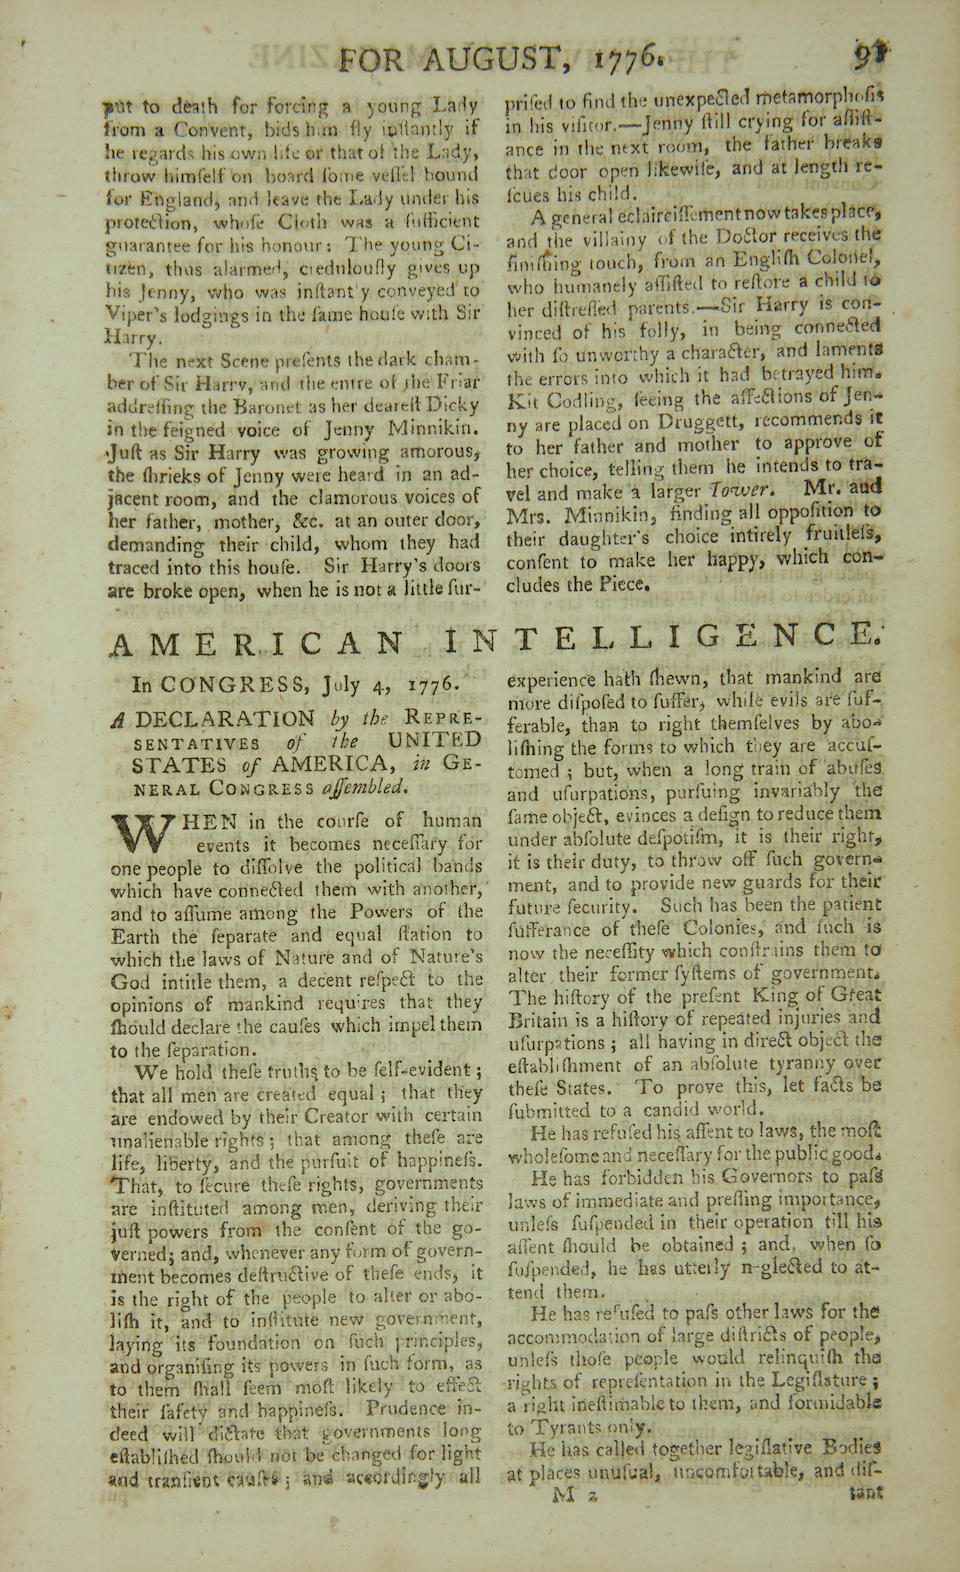 """DECLARATION OF INDEPENDENCE. """"American Intelligence: In Congress, July 4, 1776. A Declaration by the Representatives of the United States of America, in General Congress Assembled."""" in The Universal Magazine of Knowledge and Pleasure."""